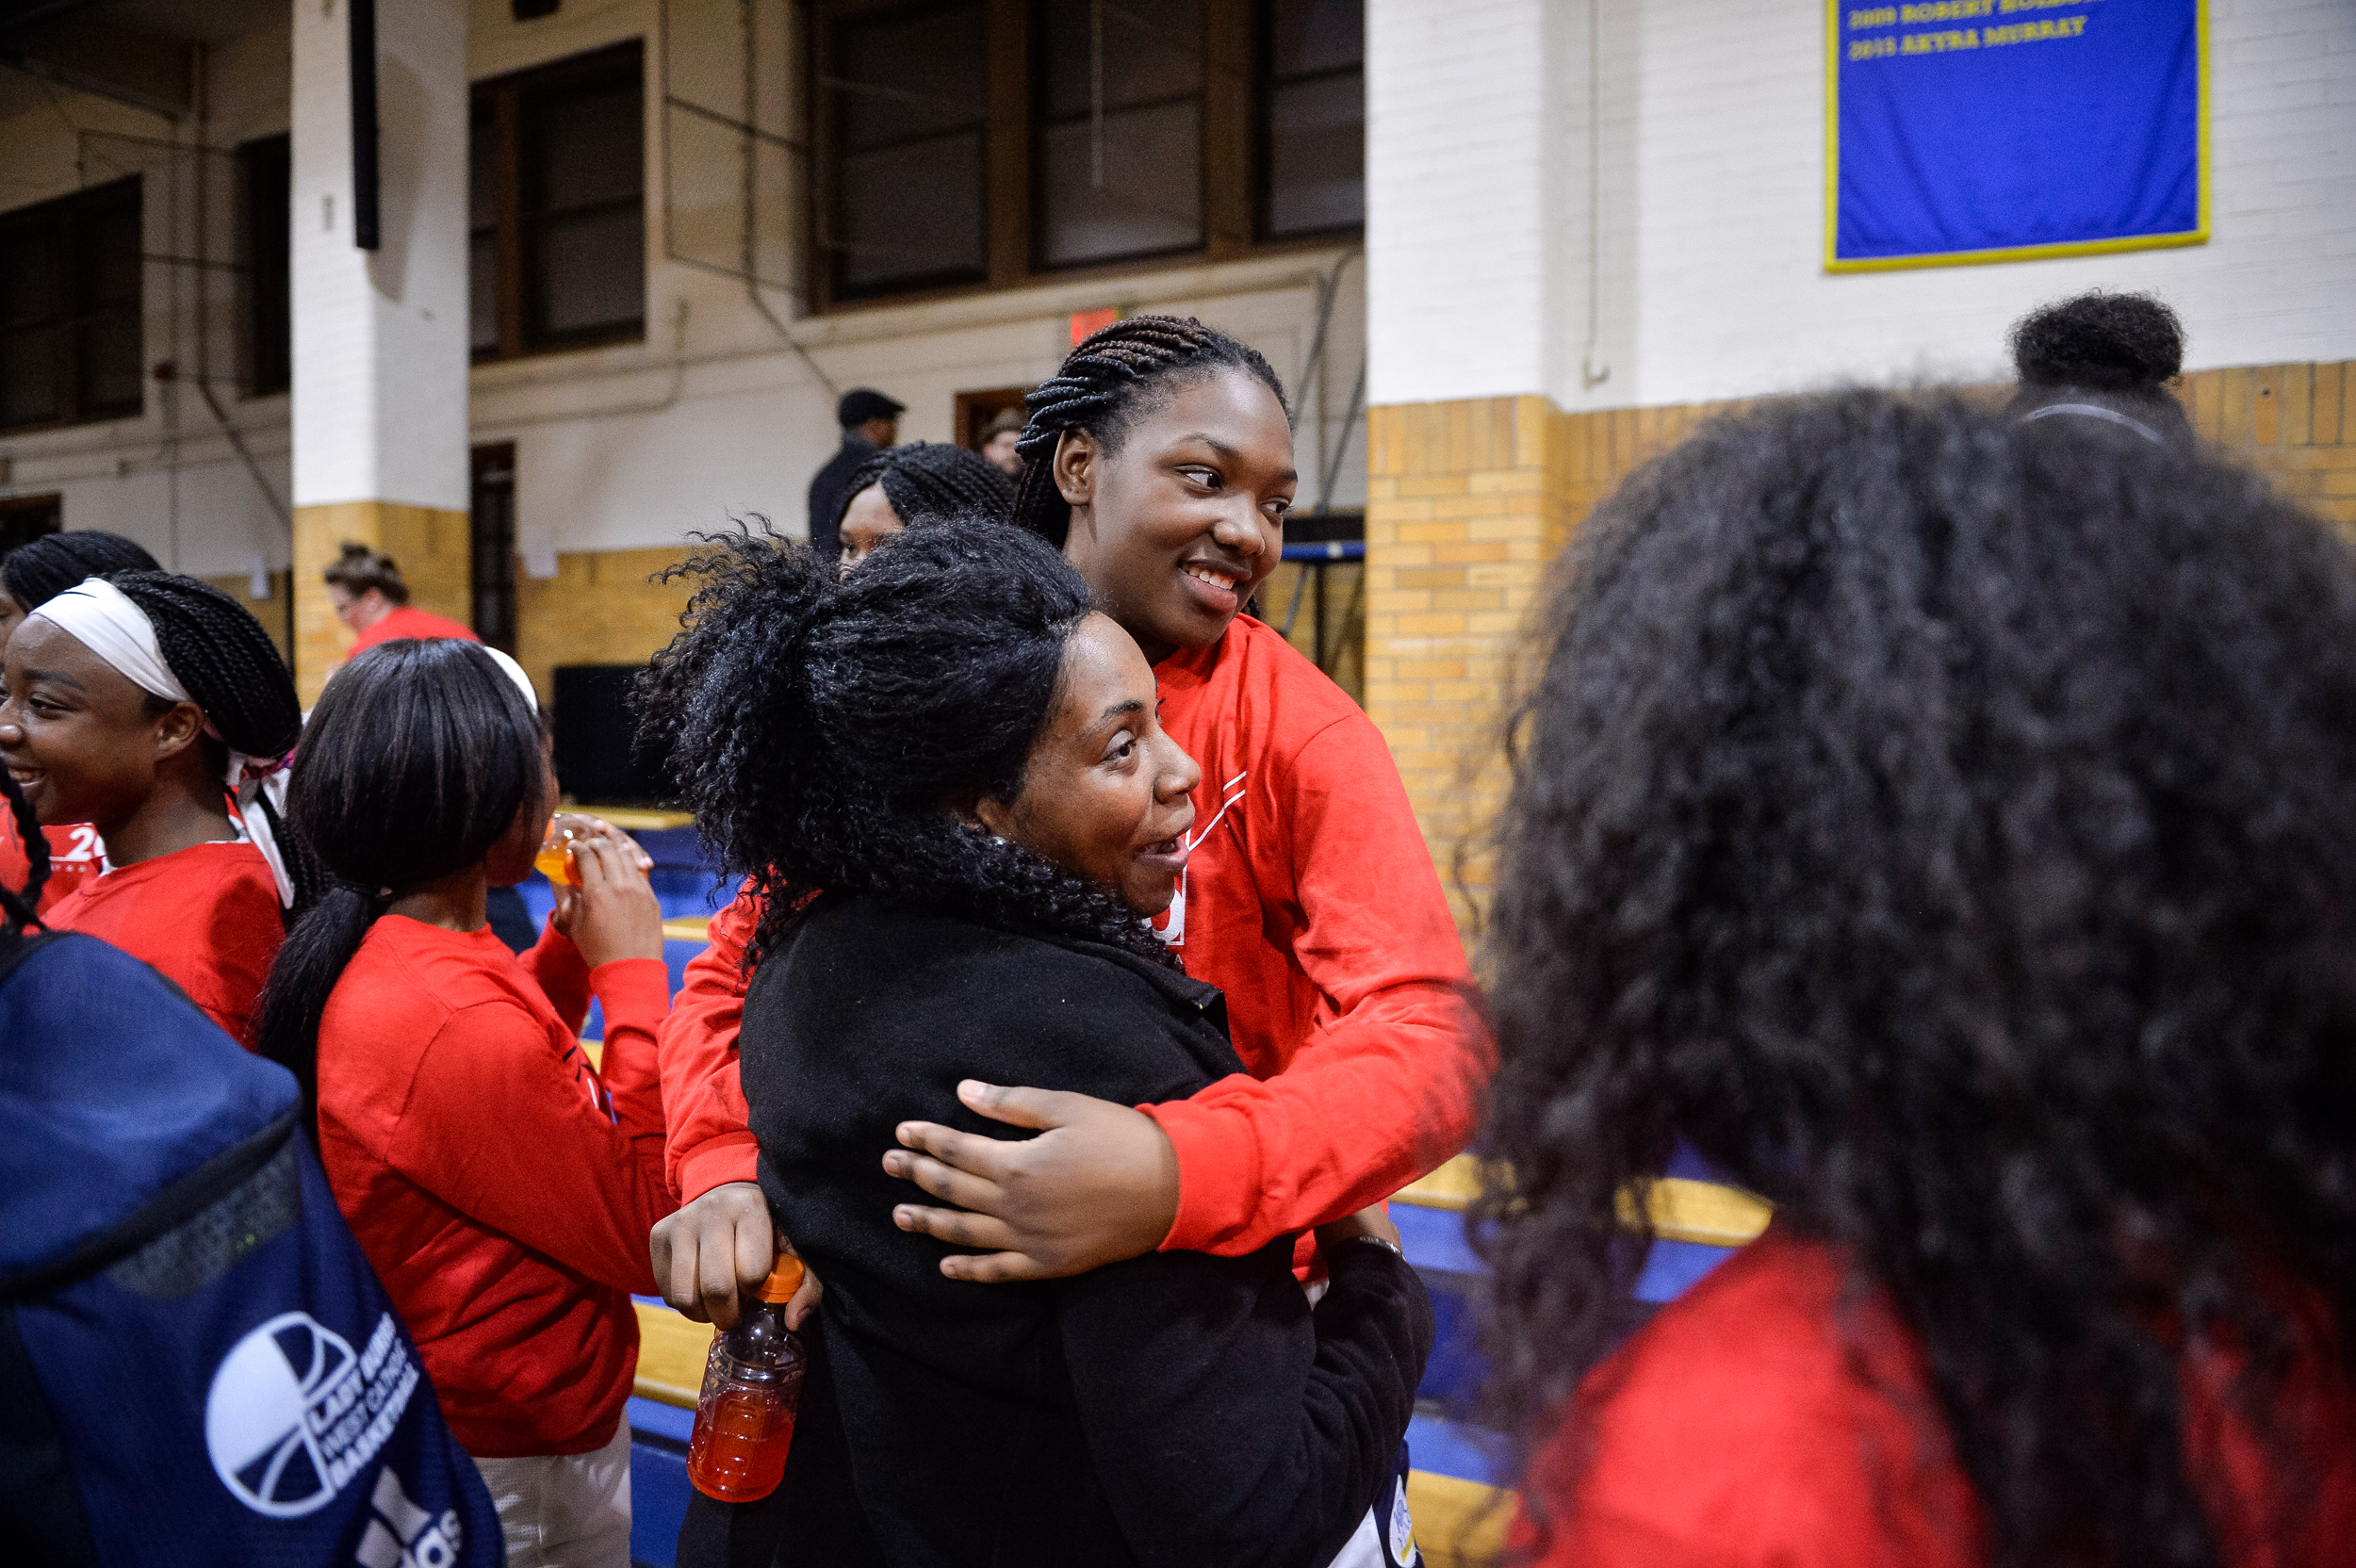 Senior Morgan Kennedy hugs Akyra Murray's mother Natalie after the first home girls basketball game at West Catholic High School.